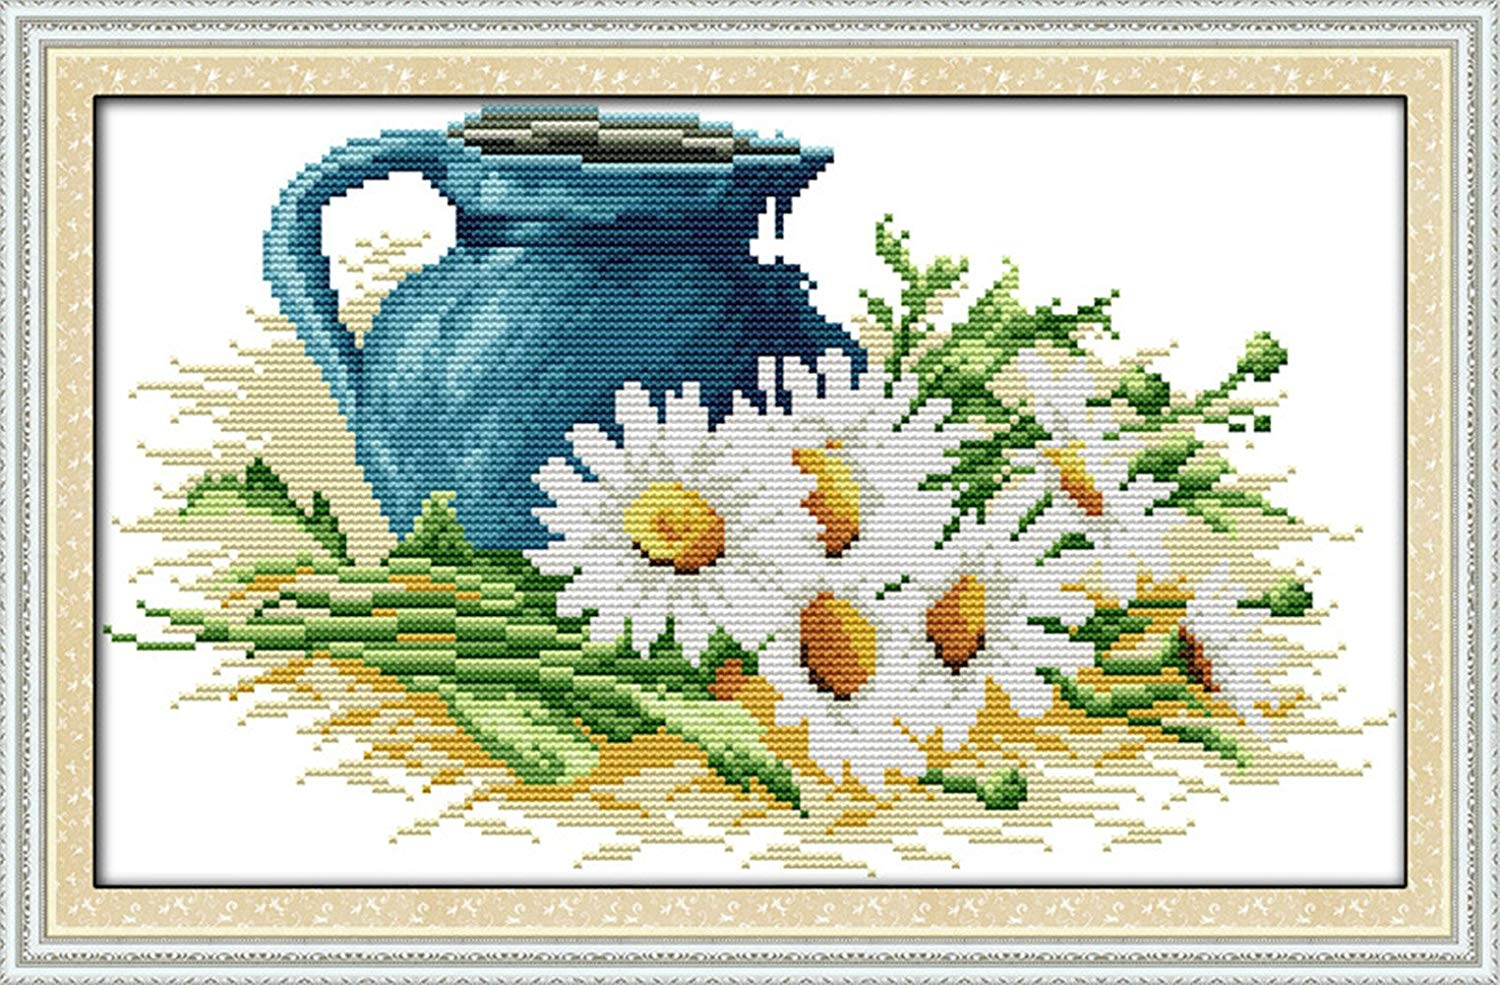 """No Frame eGoodn Cross Stitch Stamped Kit Pre-Printed Pattern The Birds On The Tree 11CT Aida Fabric Size 26/"""" x 9.8 for Embroidery Needlework Art Crafts Lovers"""